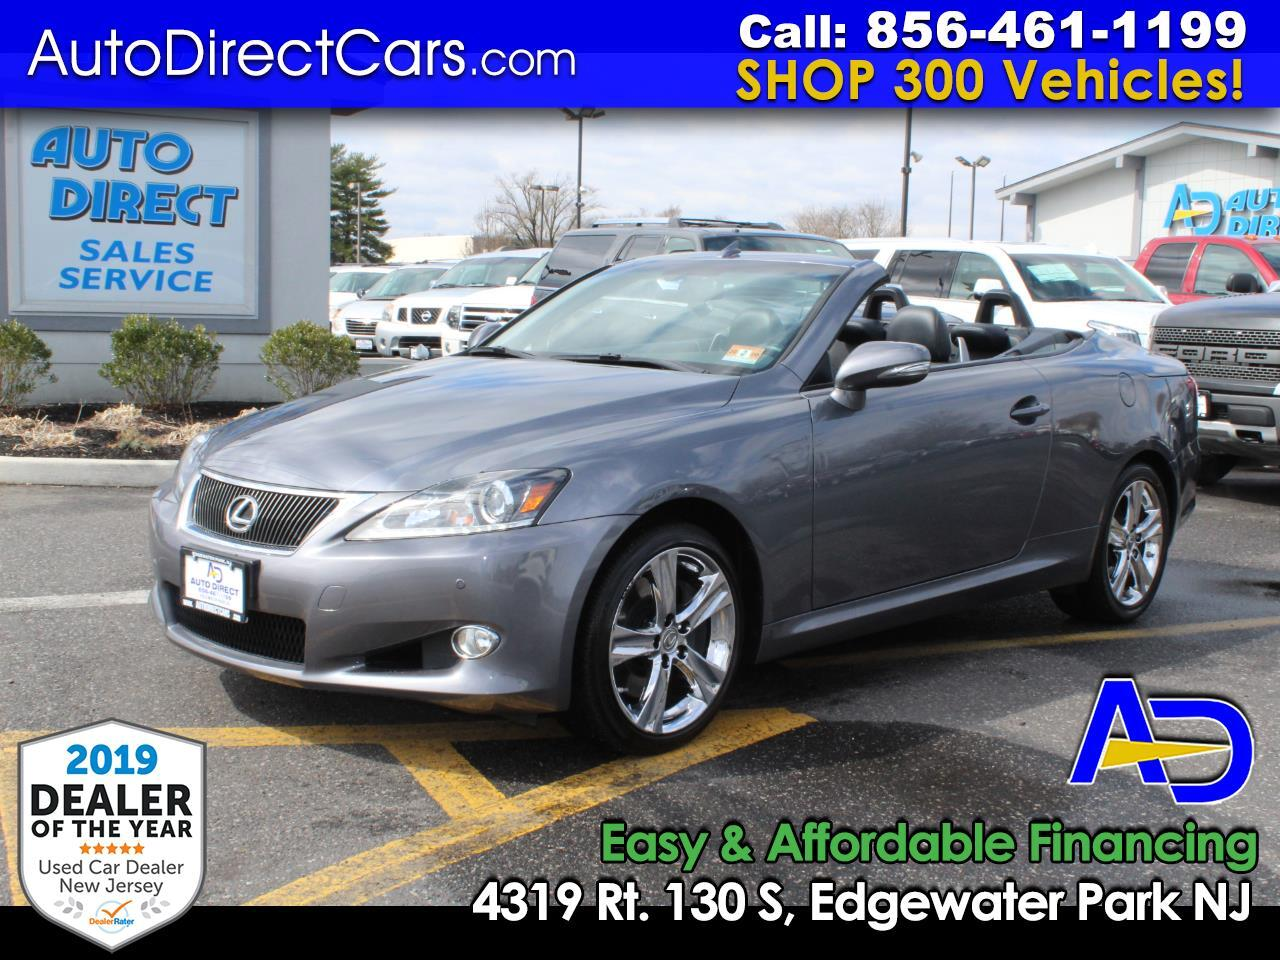 2013 Lexus IS 350C 2dr Conv